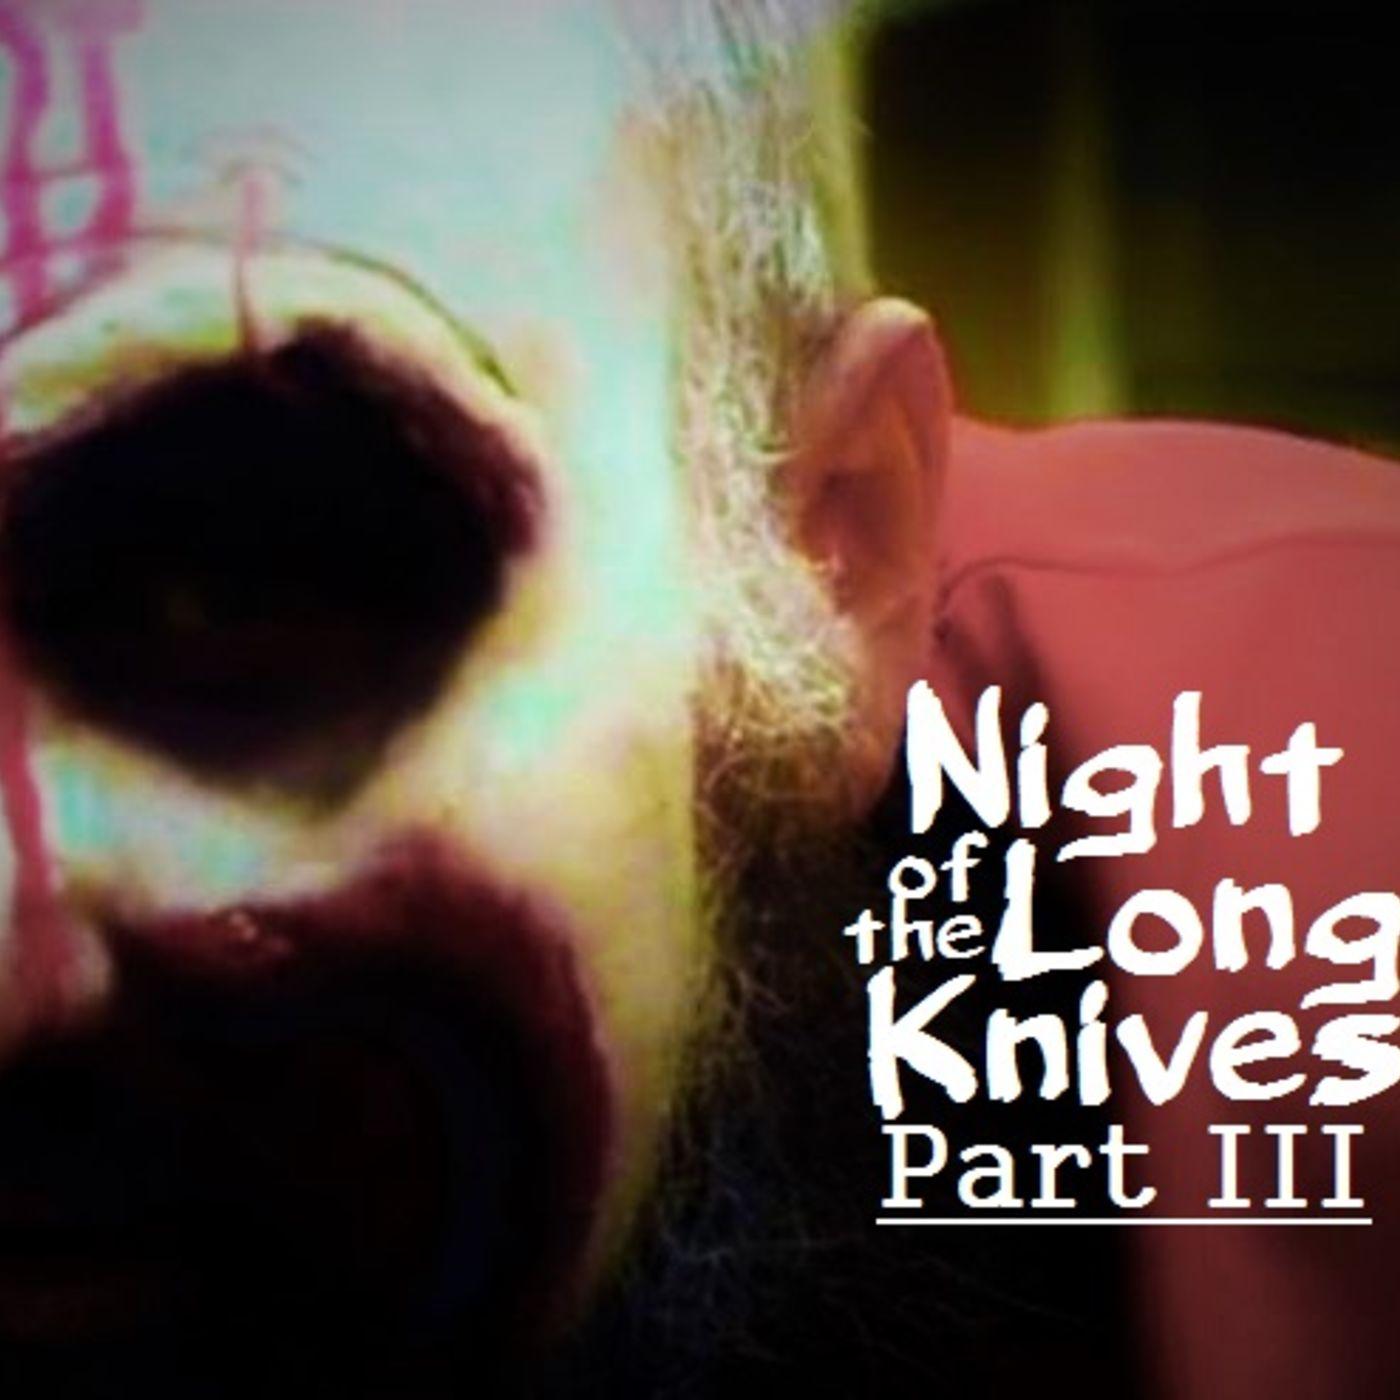 Night of the Long Knives Part III